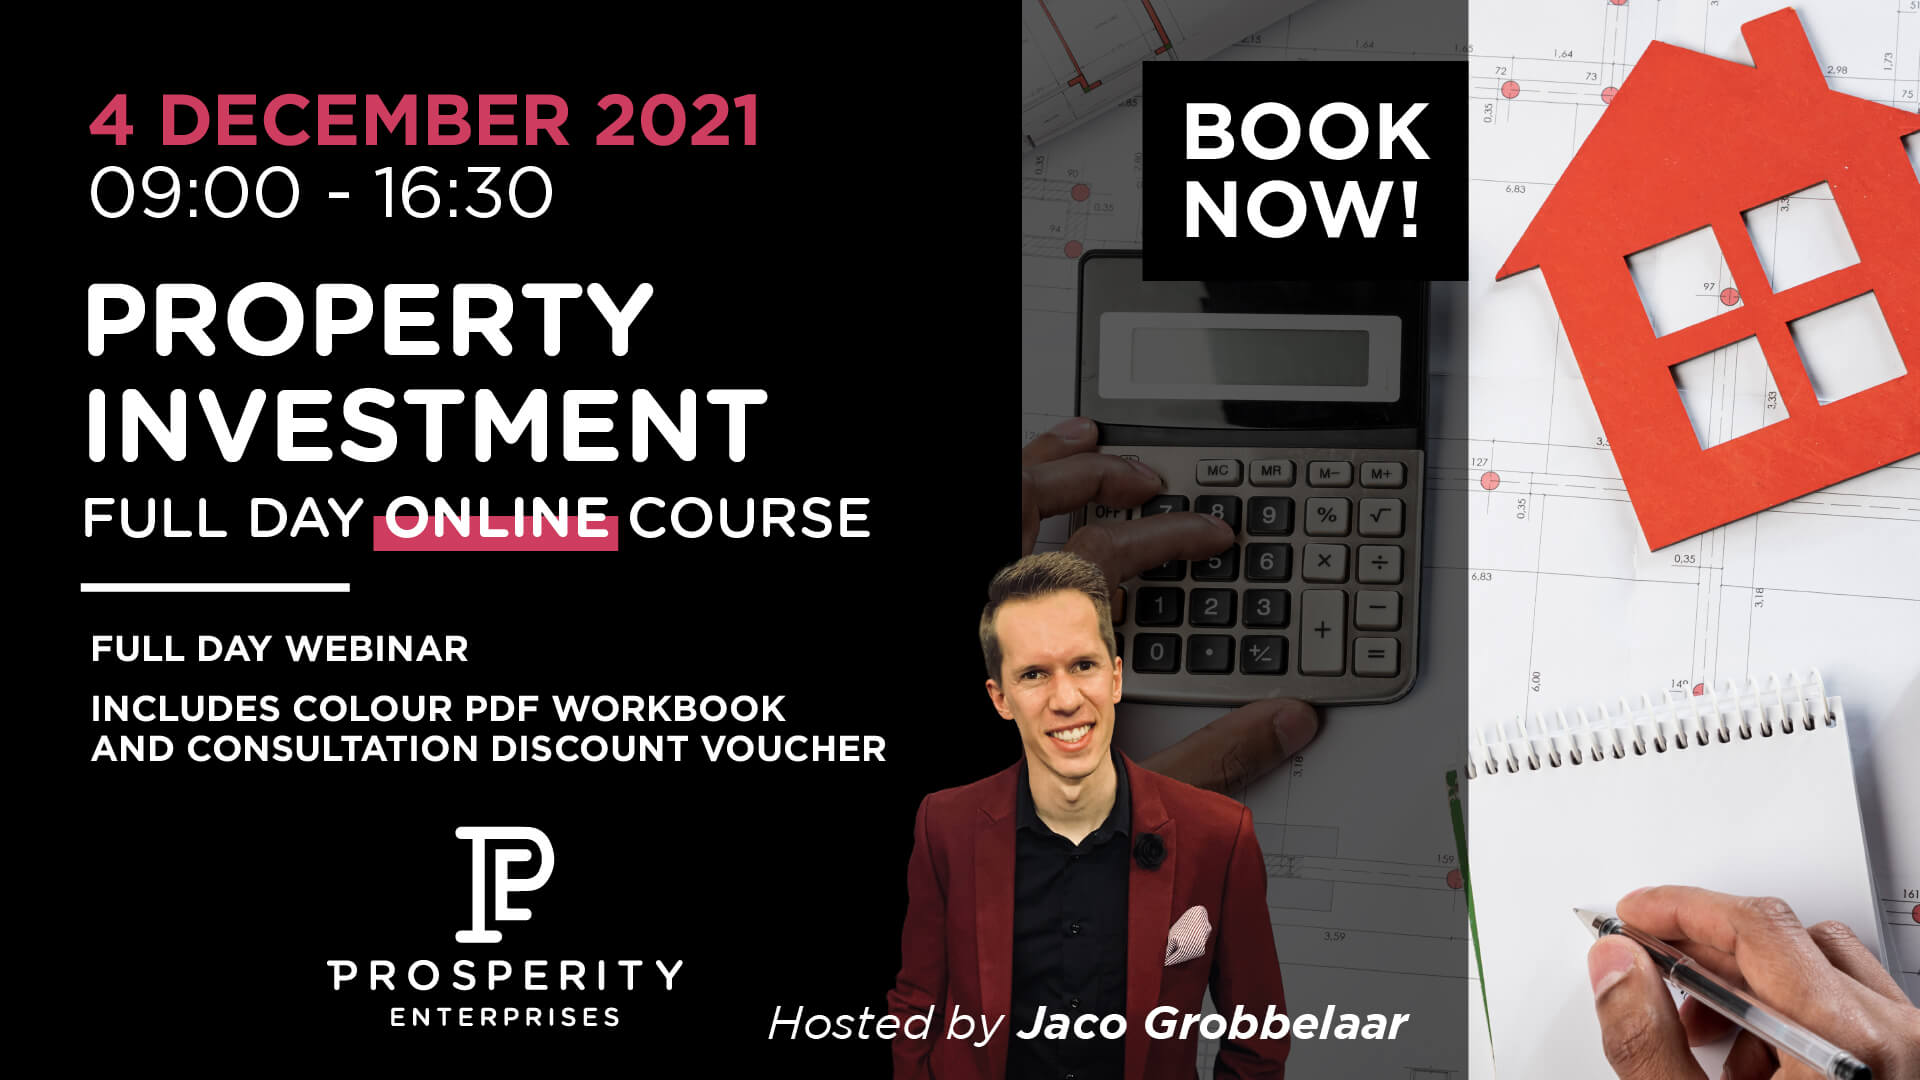 property-investment-online-course-0412202